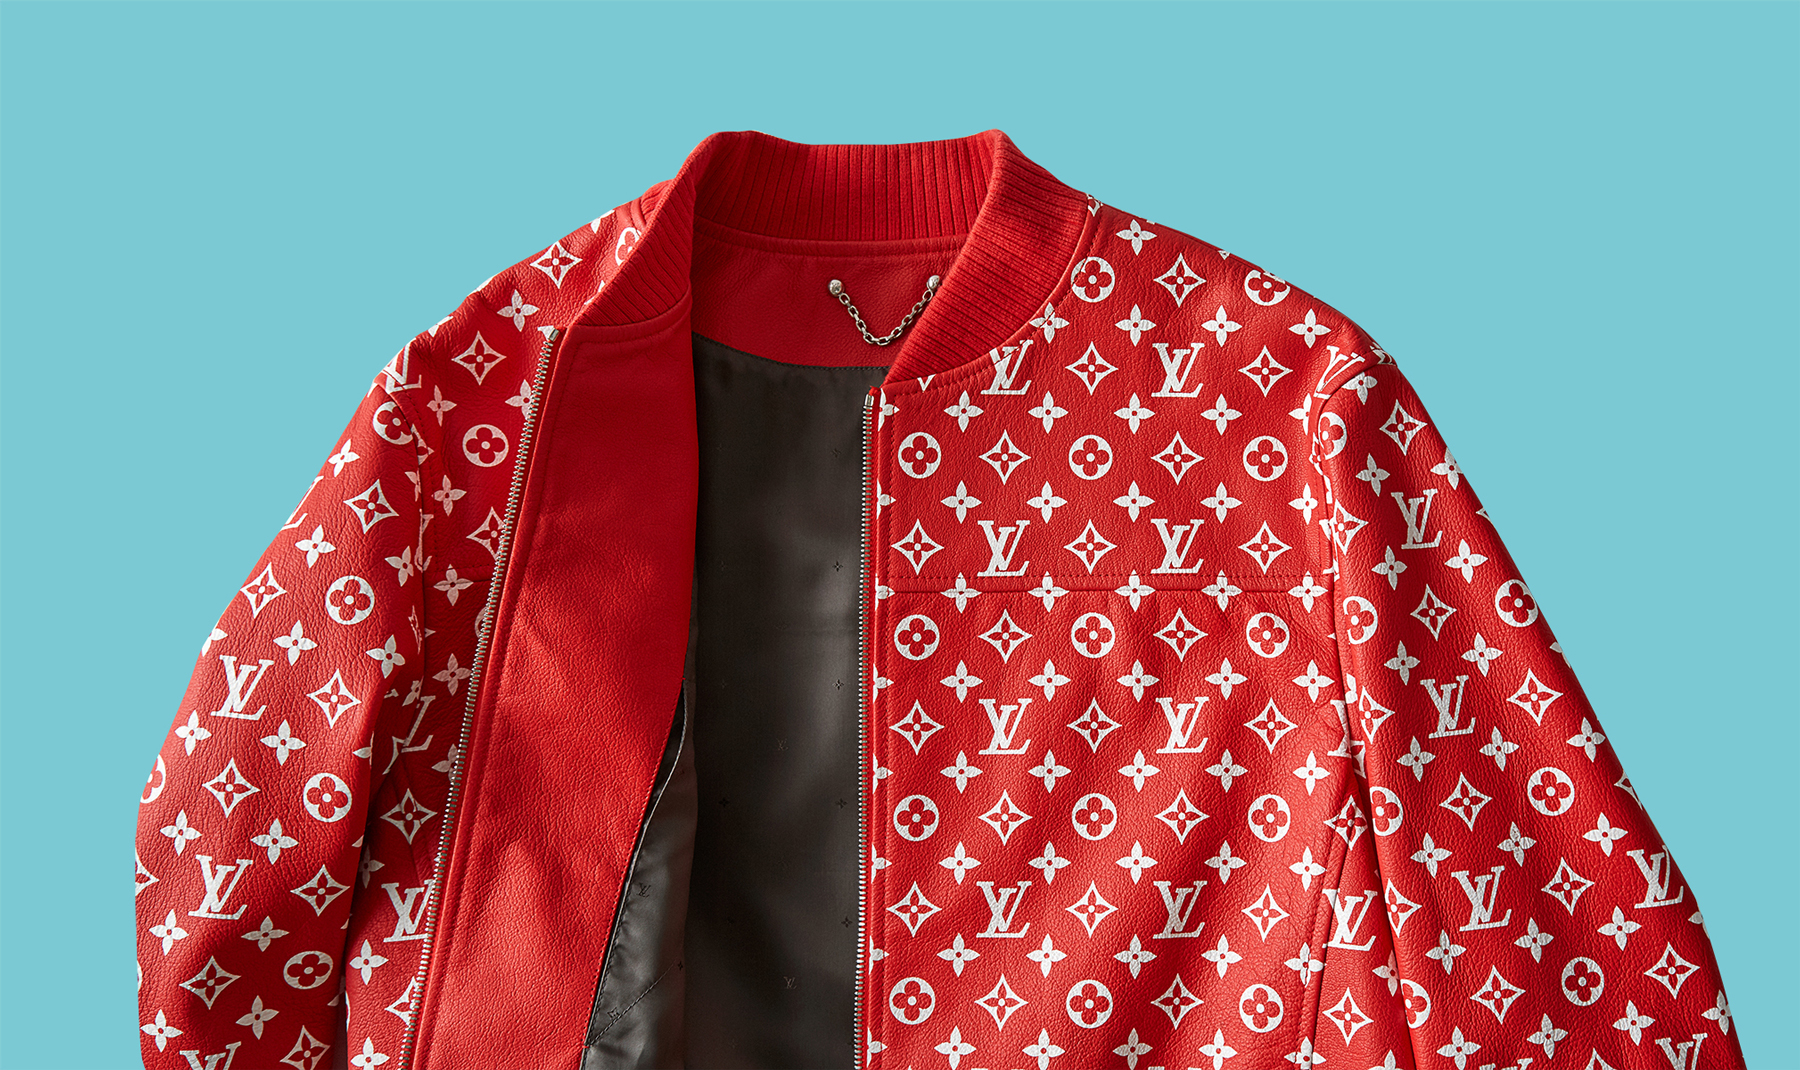 Luxury brands resale - most valuable brands; Supreme x Louis Vuitton jacket